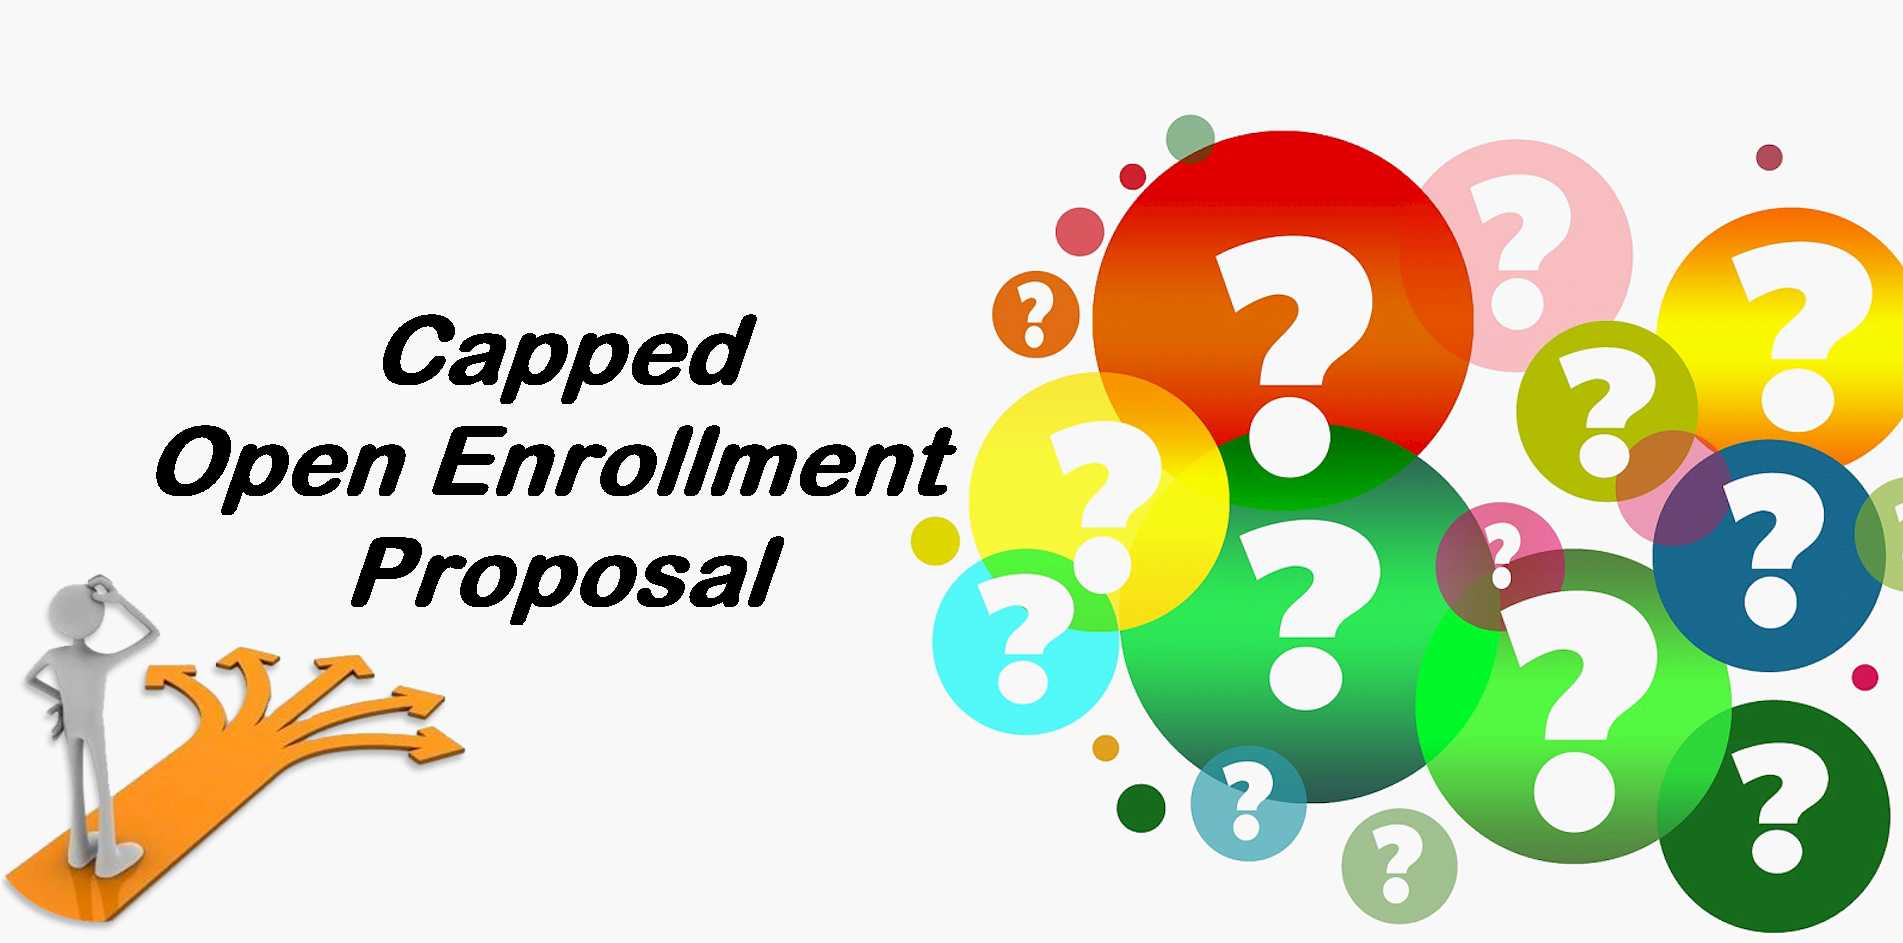 Learn more about the Capped Open Enrollment Proposal